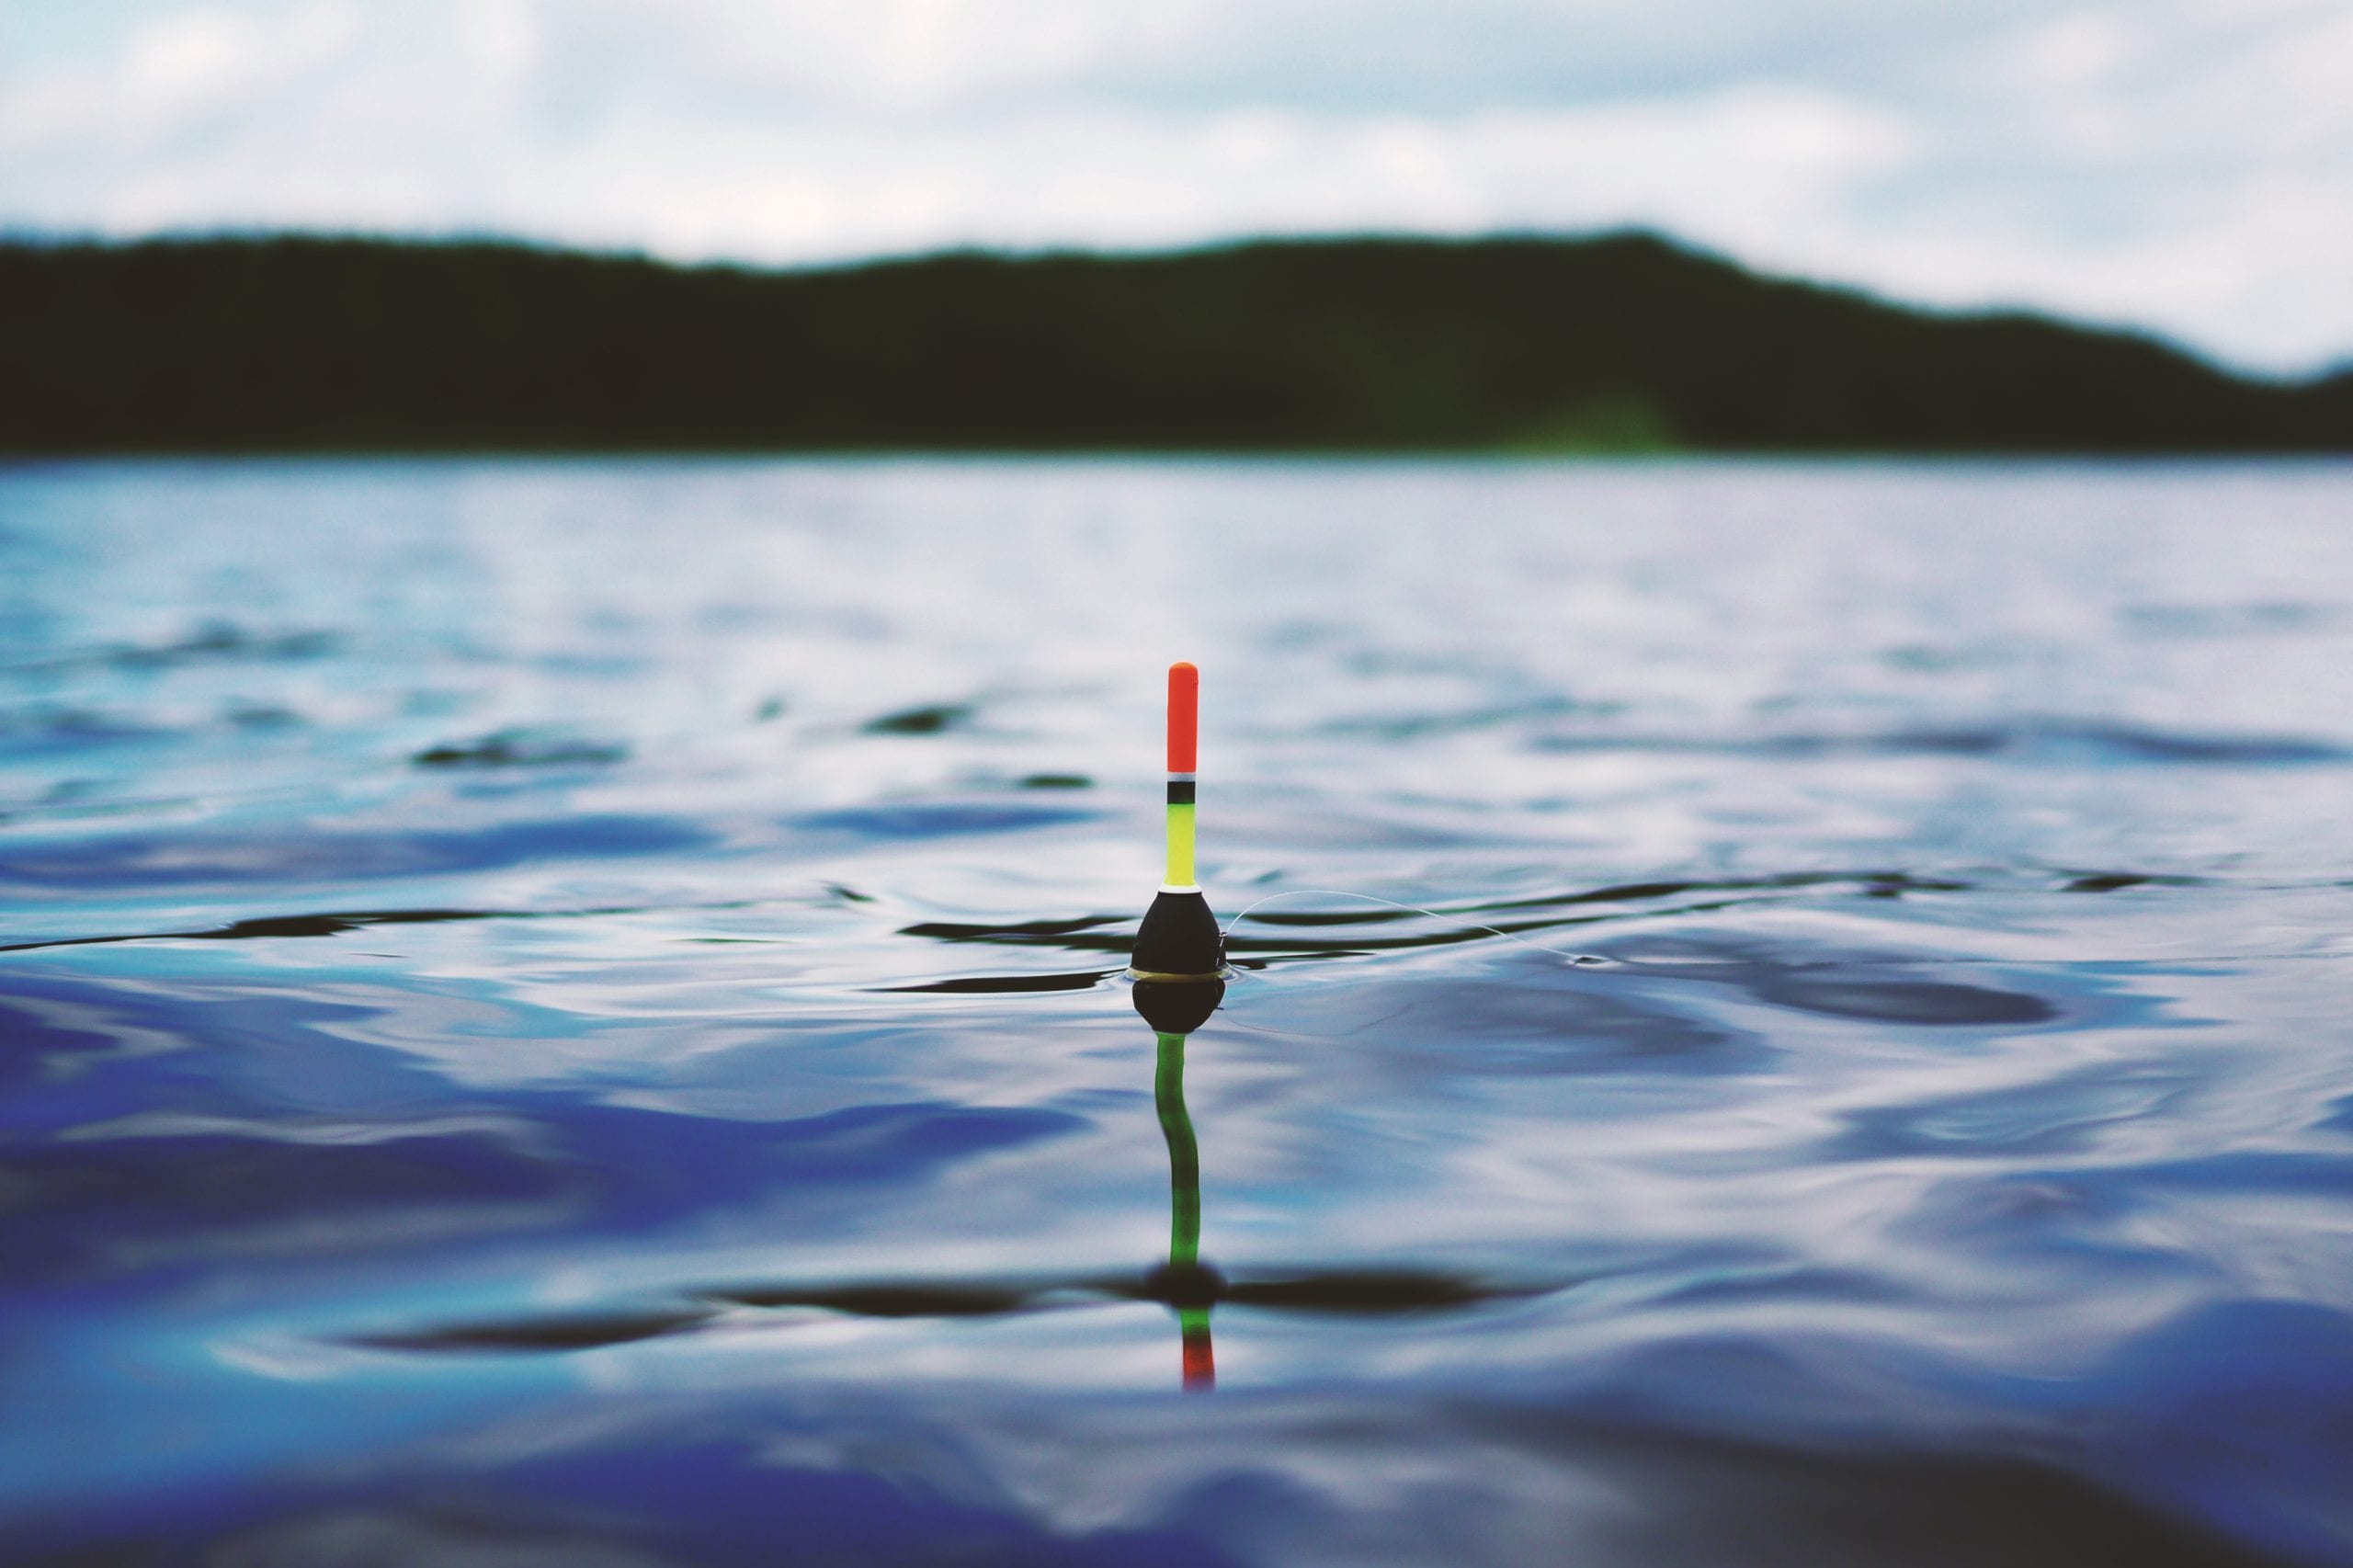 Canva – Red Yellow And Black Bouy On Body Of Water During Daytime